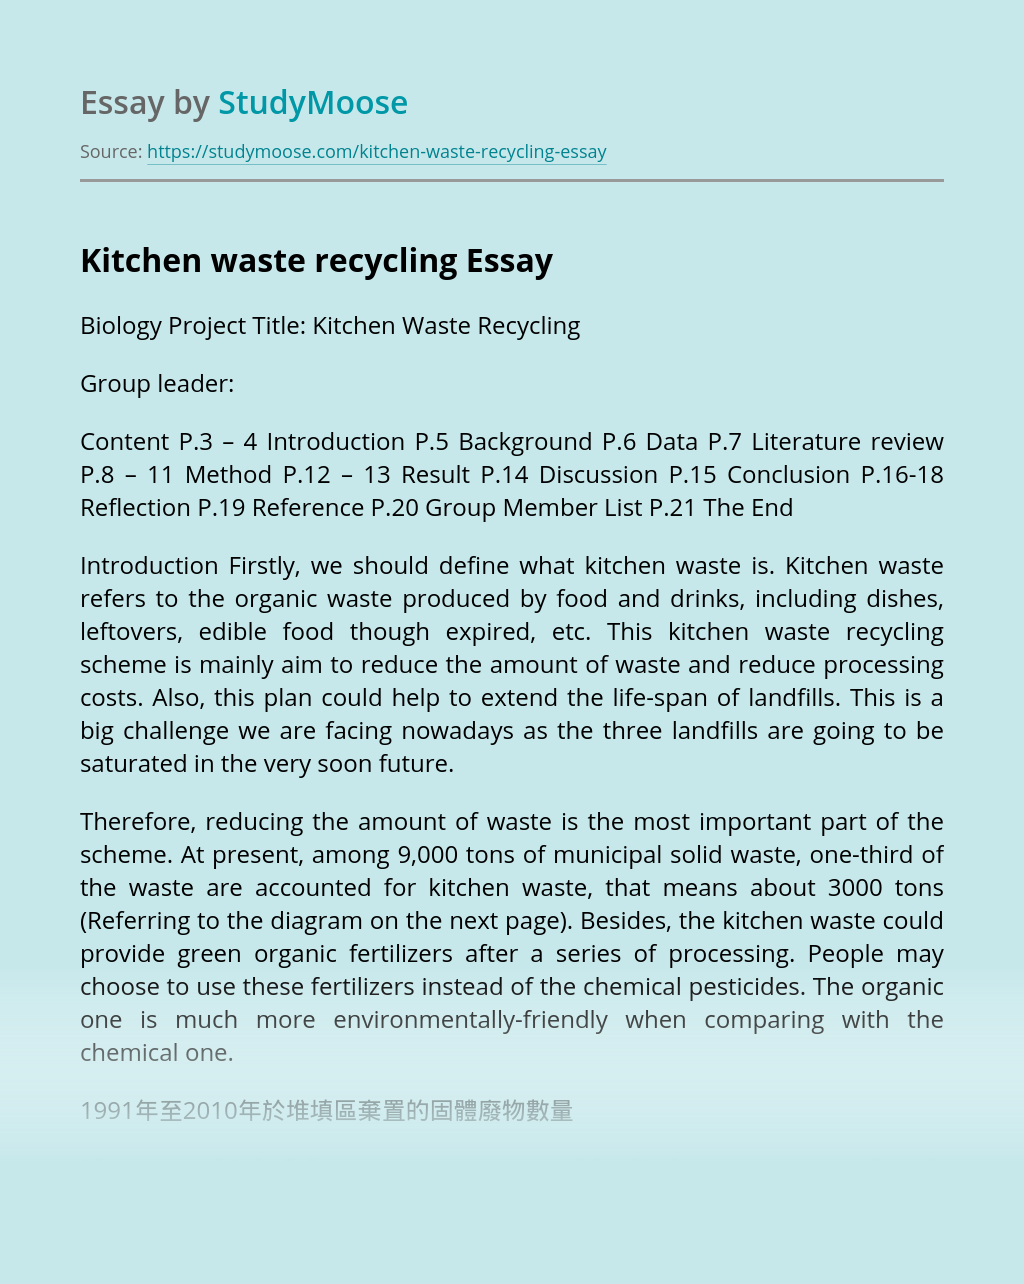 Kitchen waste recycling